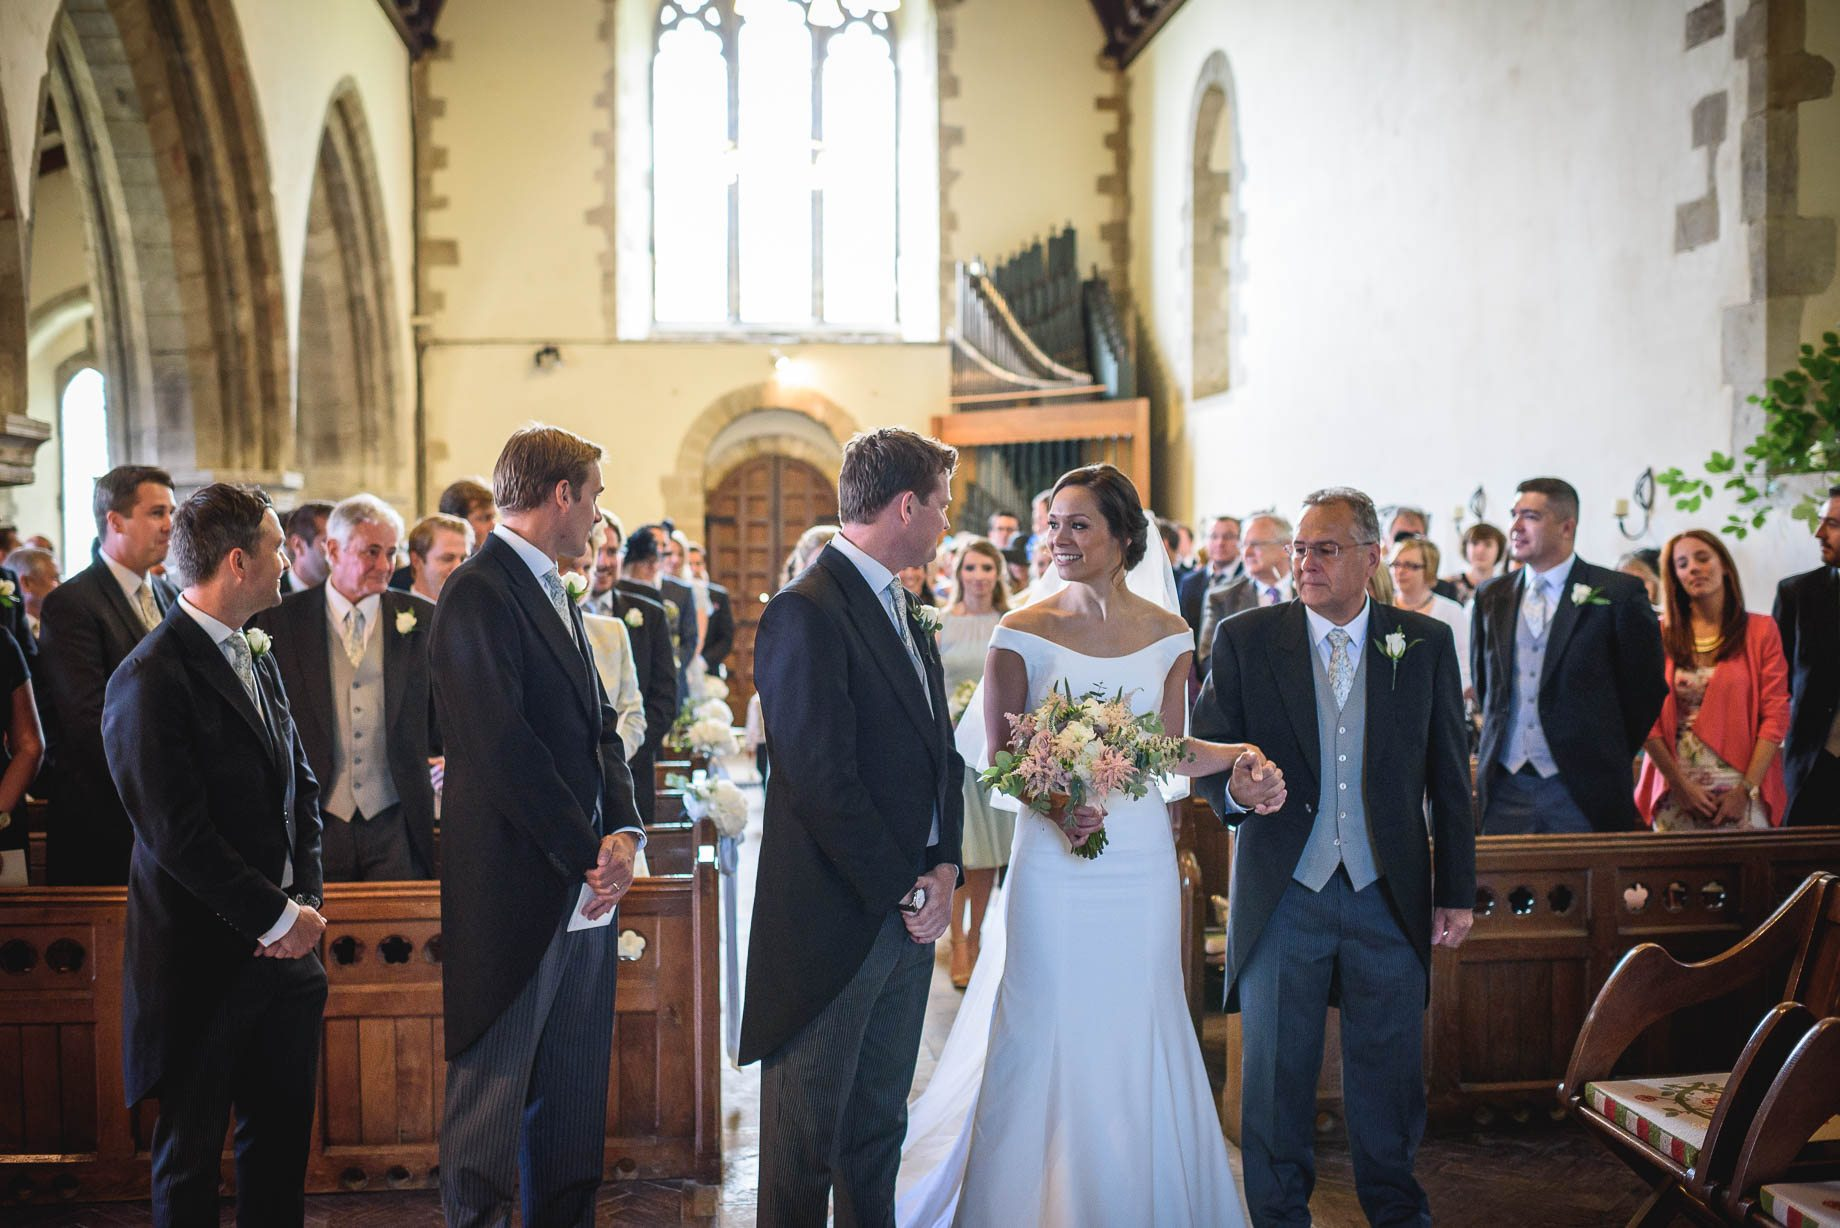 Tithe Barn wedding photography - Jayme and David (80 of 189)